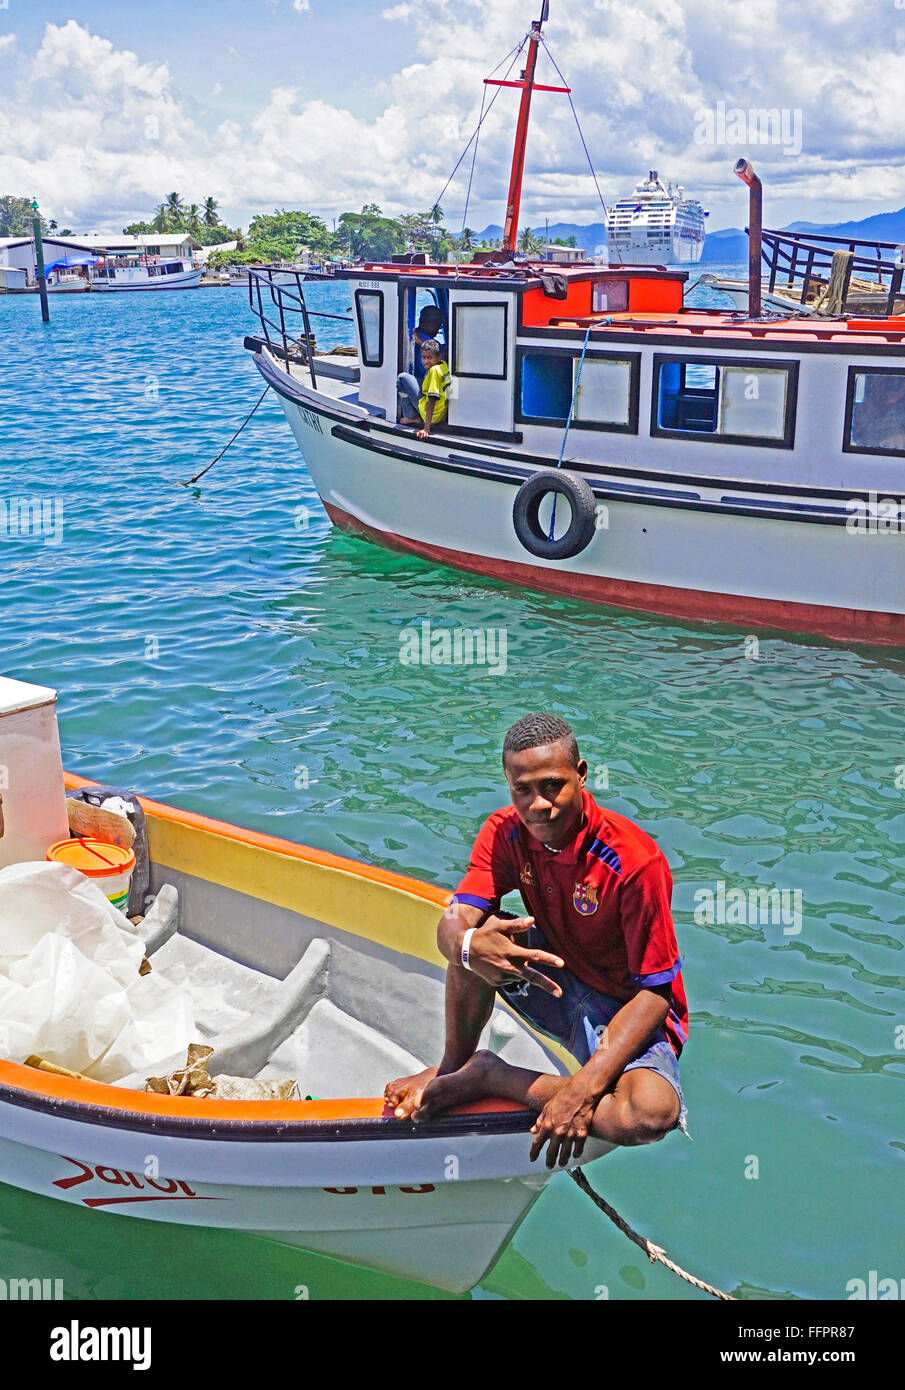 Young man on boat at Alotau Harbour on Milne Bay, Papua New Guinea. - Stock Image